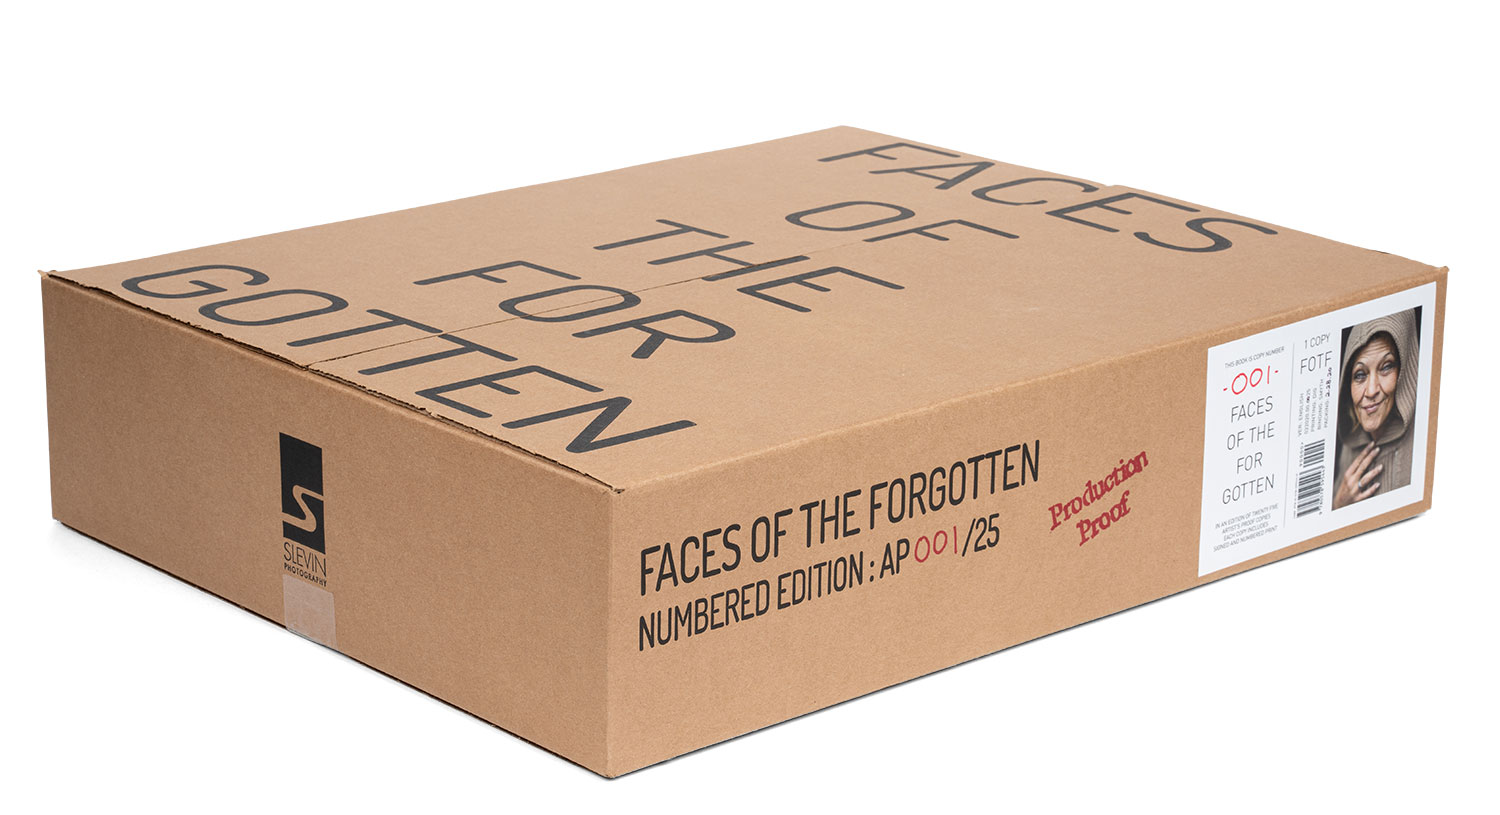 Faces of the Forgotten Artist's Proof box with label.